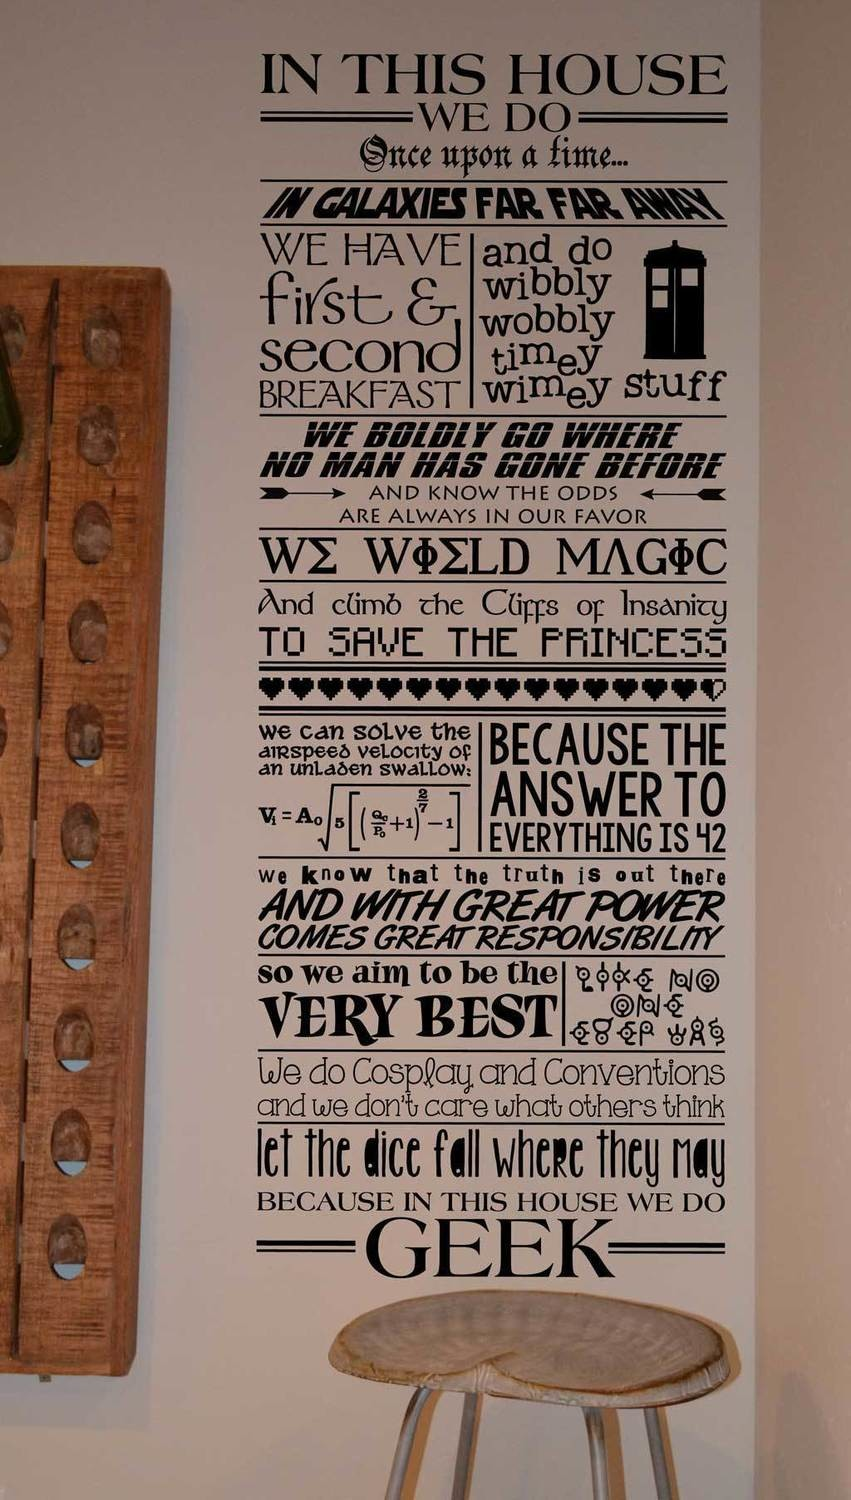 In this house we do geek wall decal LM001